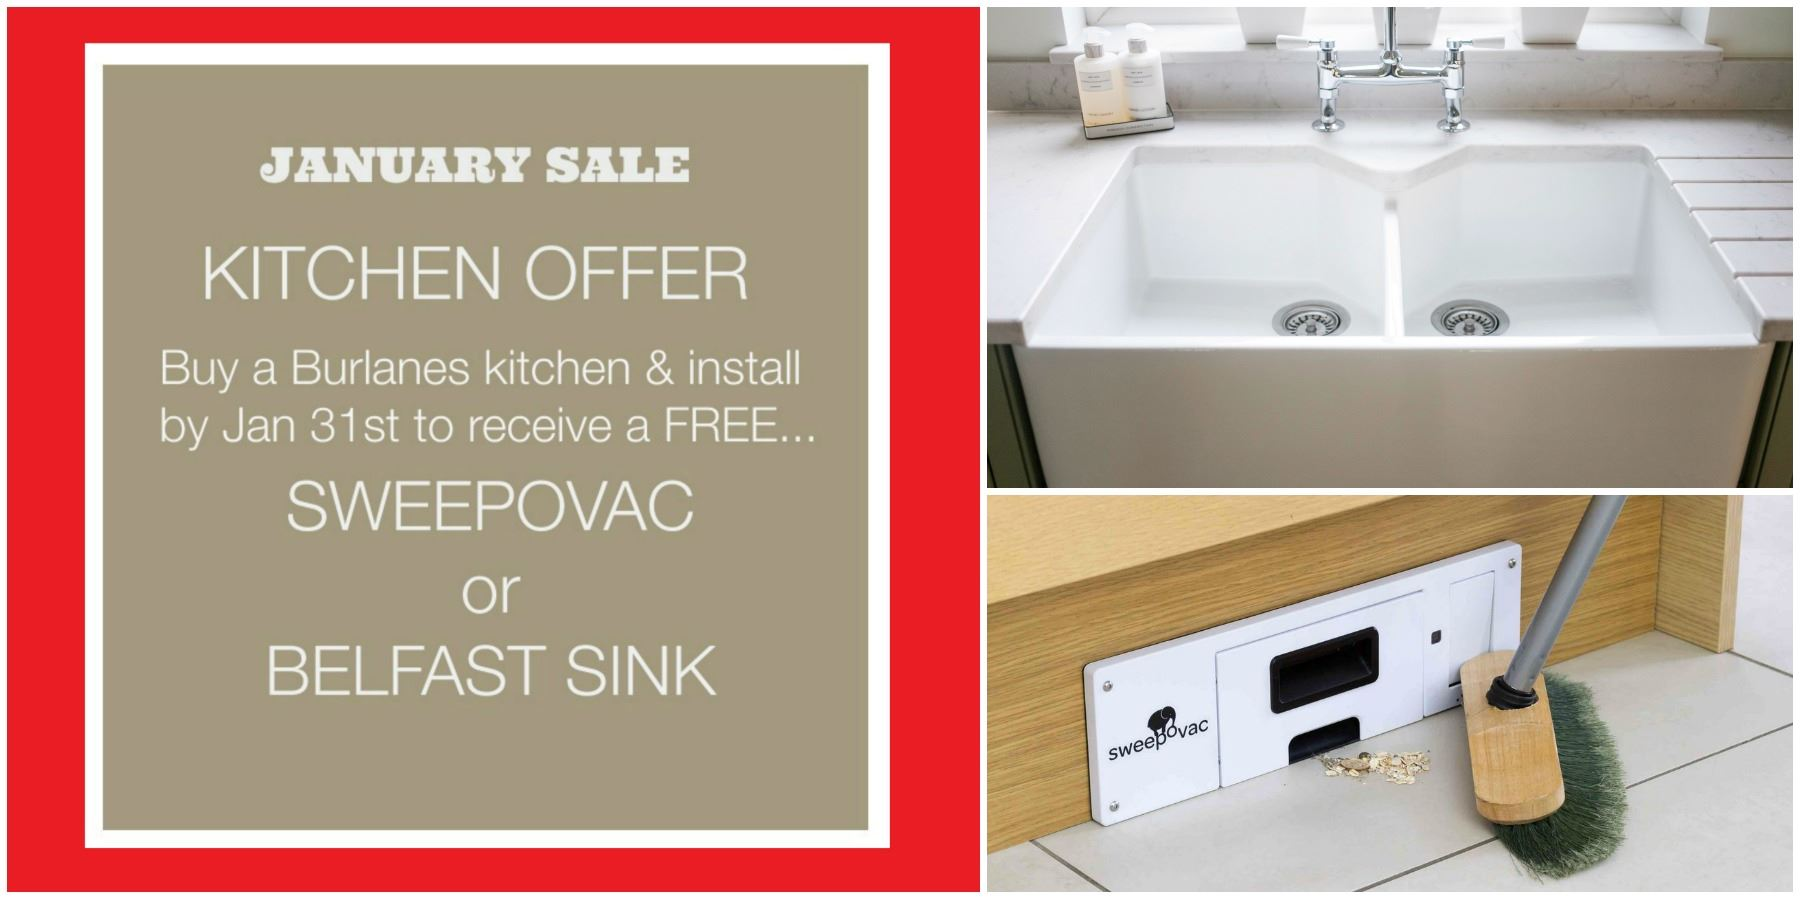 Burlanes Kitchen Offer - January Sale -